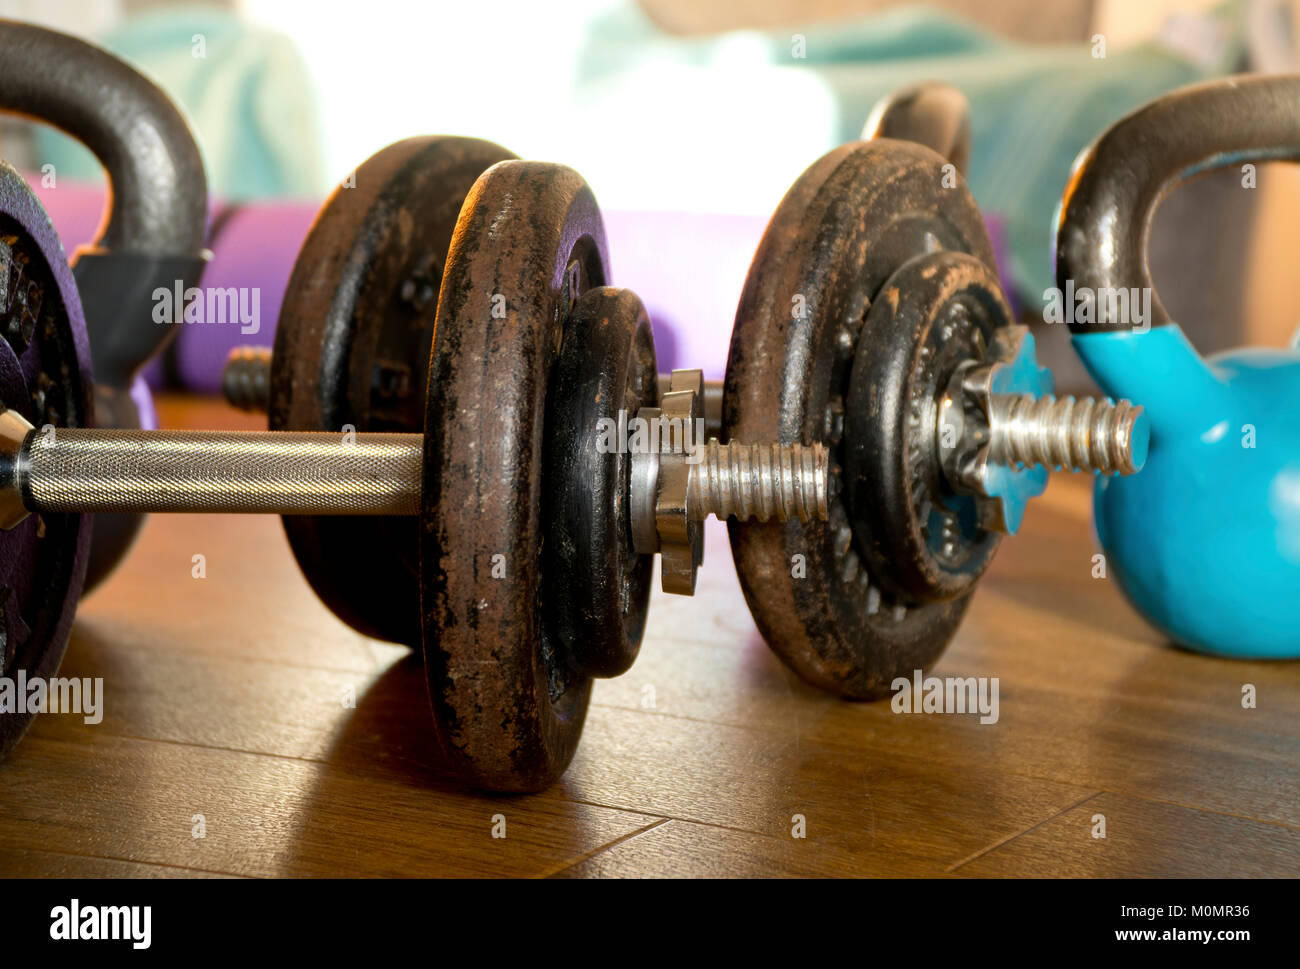 Dumbbells and kettlebells on a wooden floor. - Stock Image